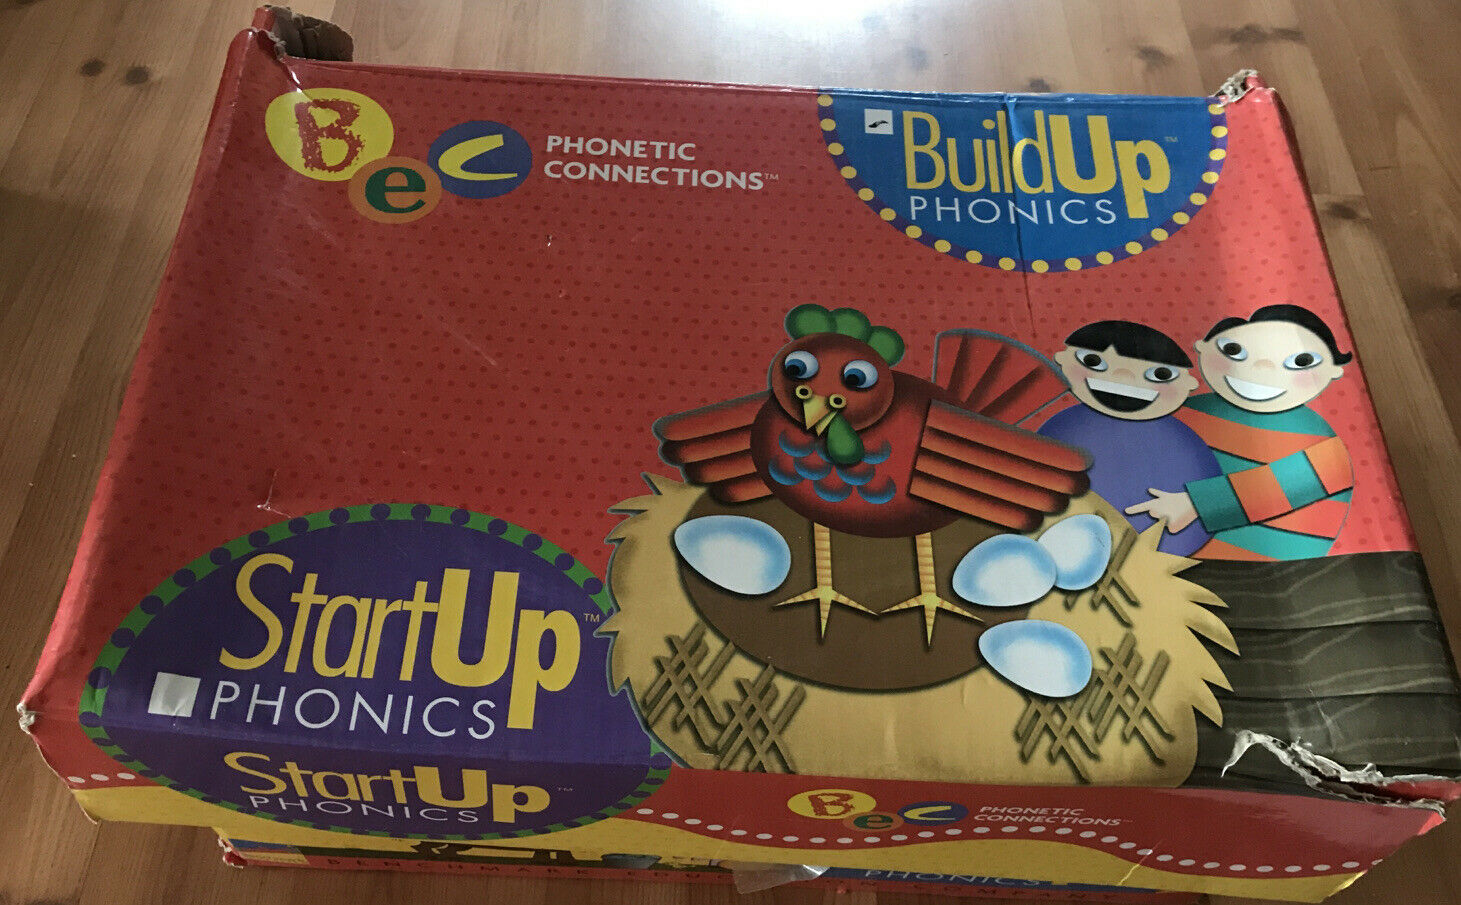 Benchmark Education Build Up Phonics Phonetic Connections Literacy Kit VGUC 2